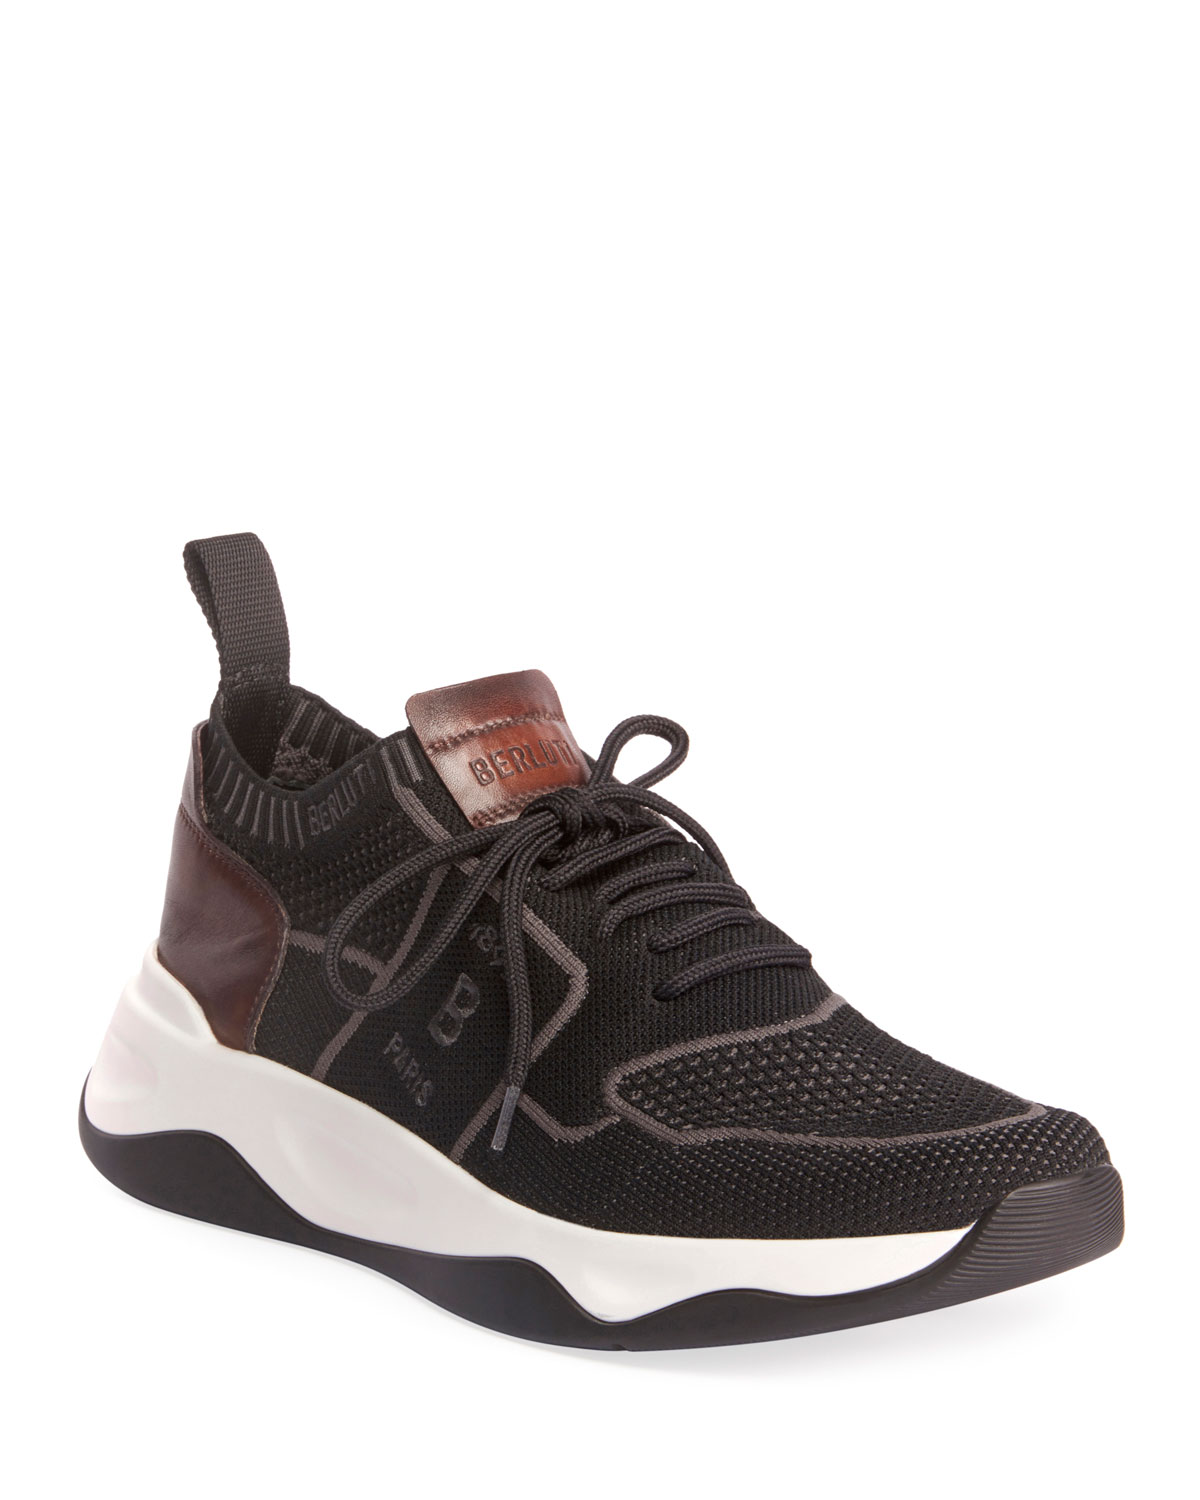 Berluti Sneakers MEN'S SHADOW STRETCH-KNIT/LEATHER SNEAKERS